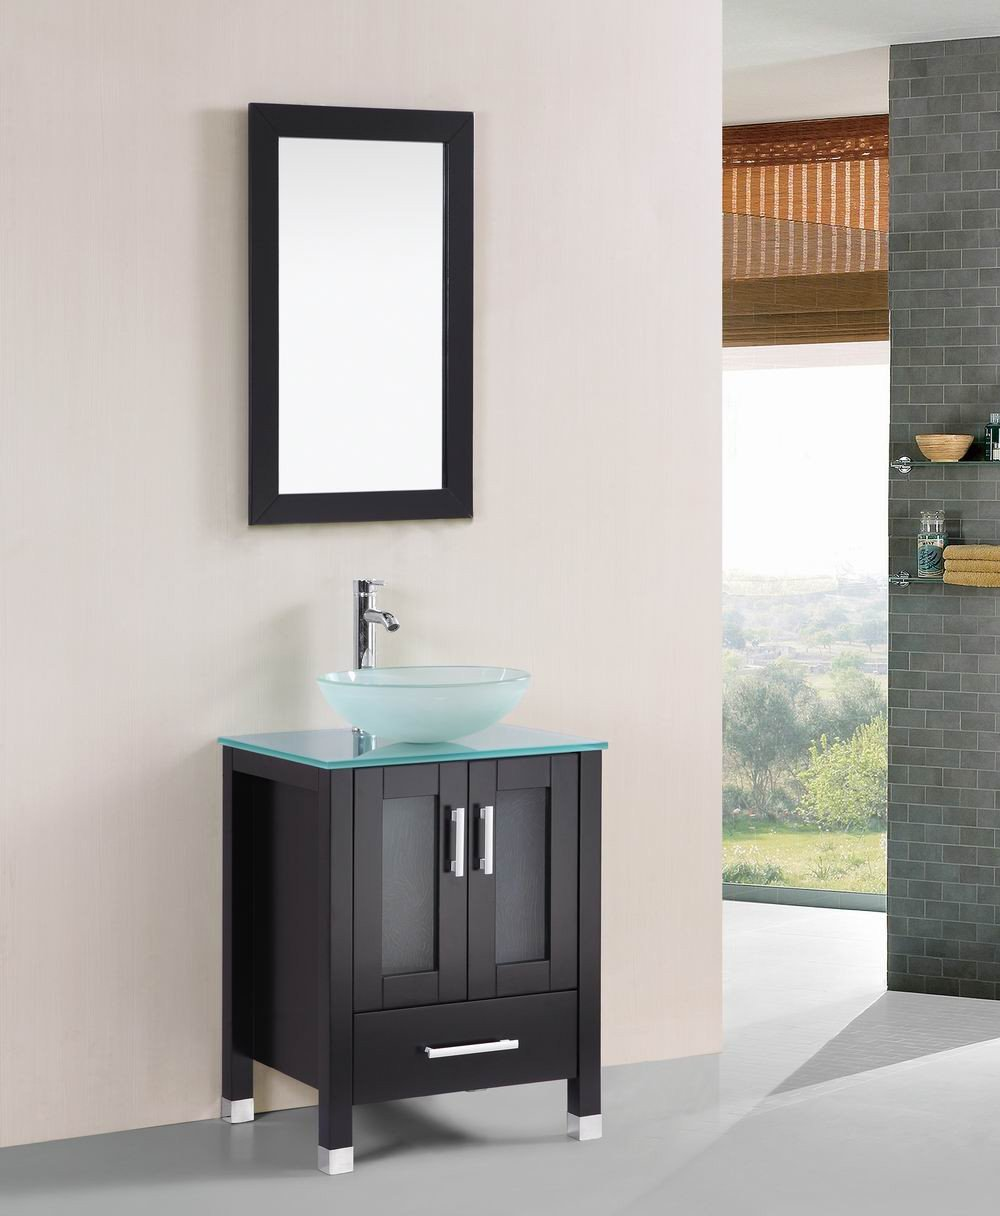 inch x runfine vitreous vanities tops white china d h bathroom in basin with p vanity top and w